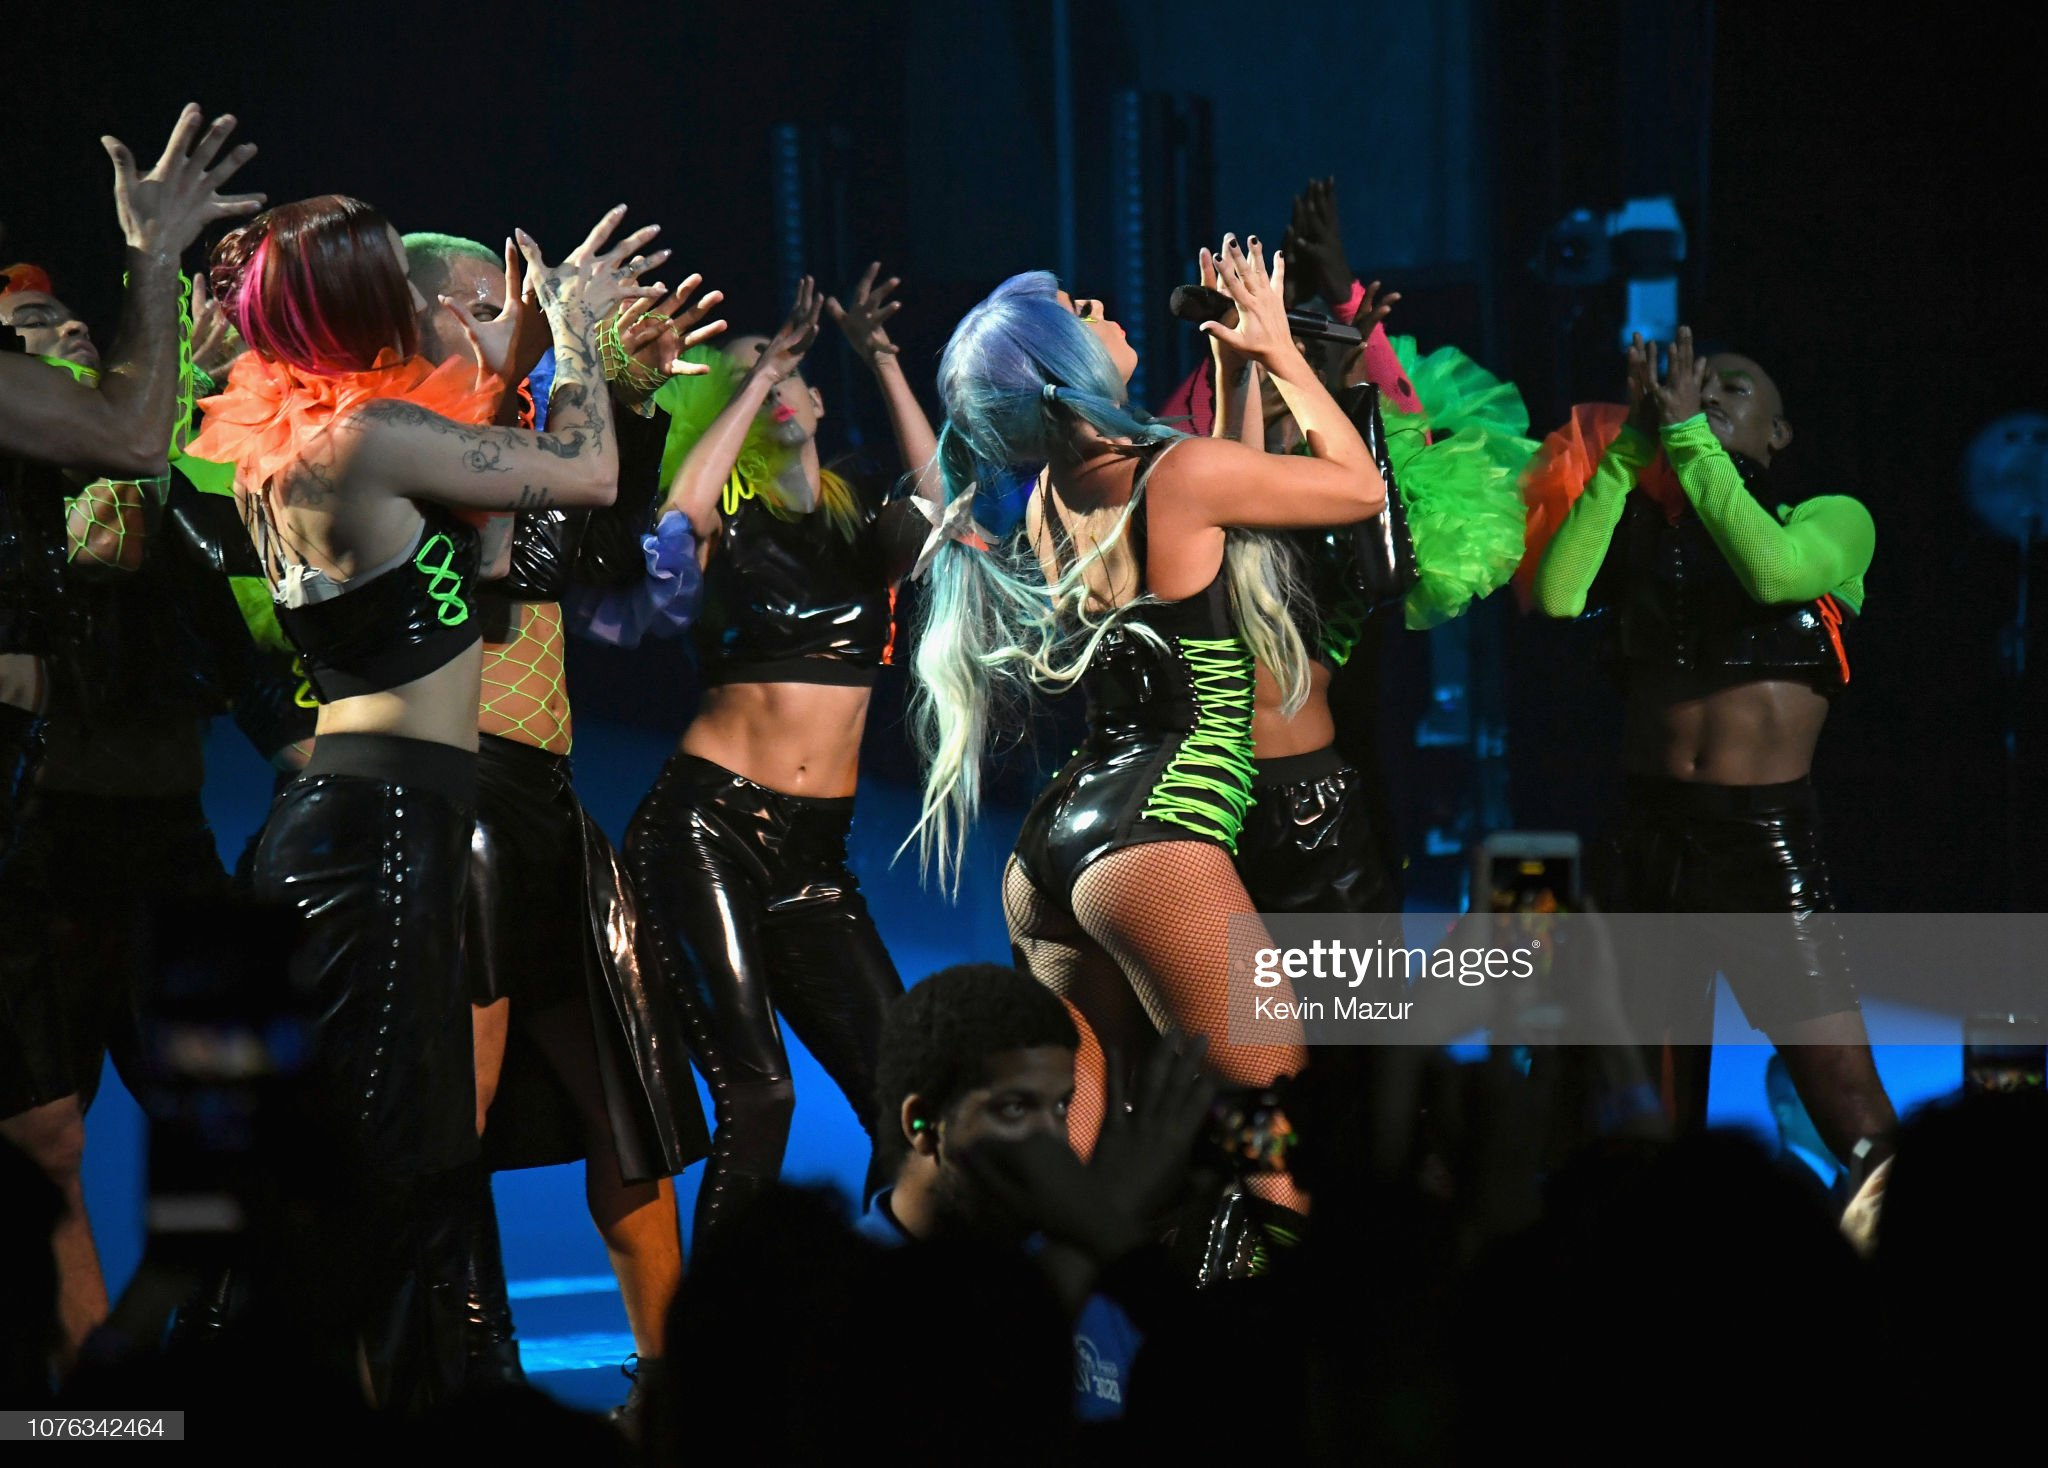 lady-gaga-performs-on-new-years-eve-duri